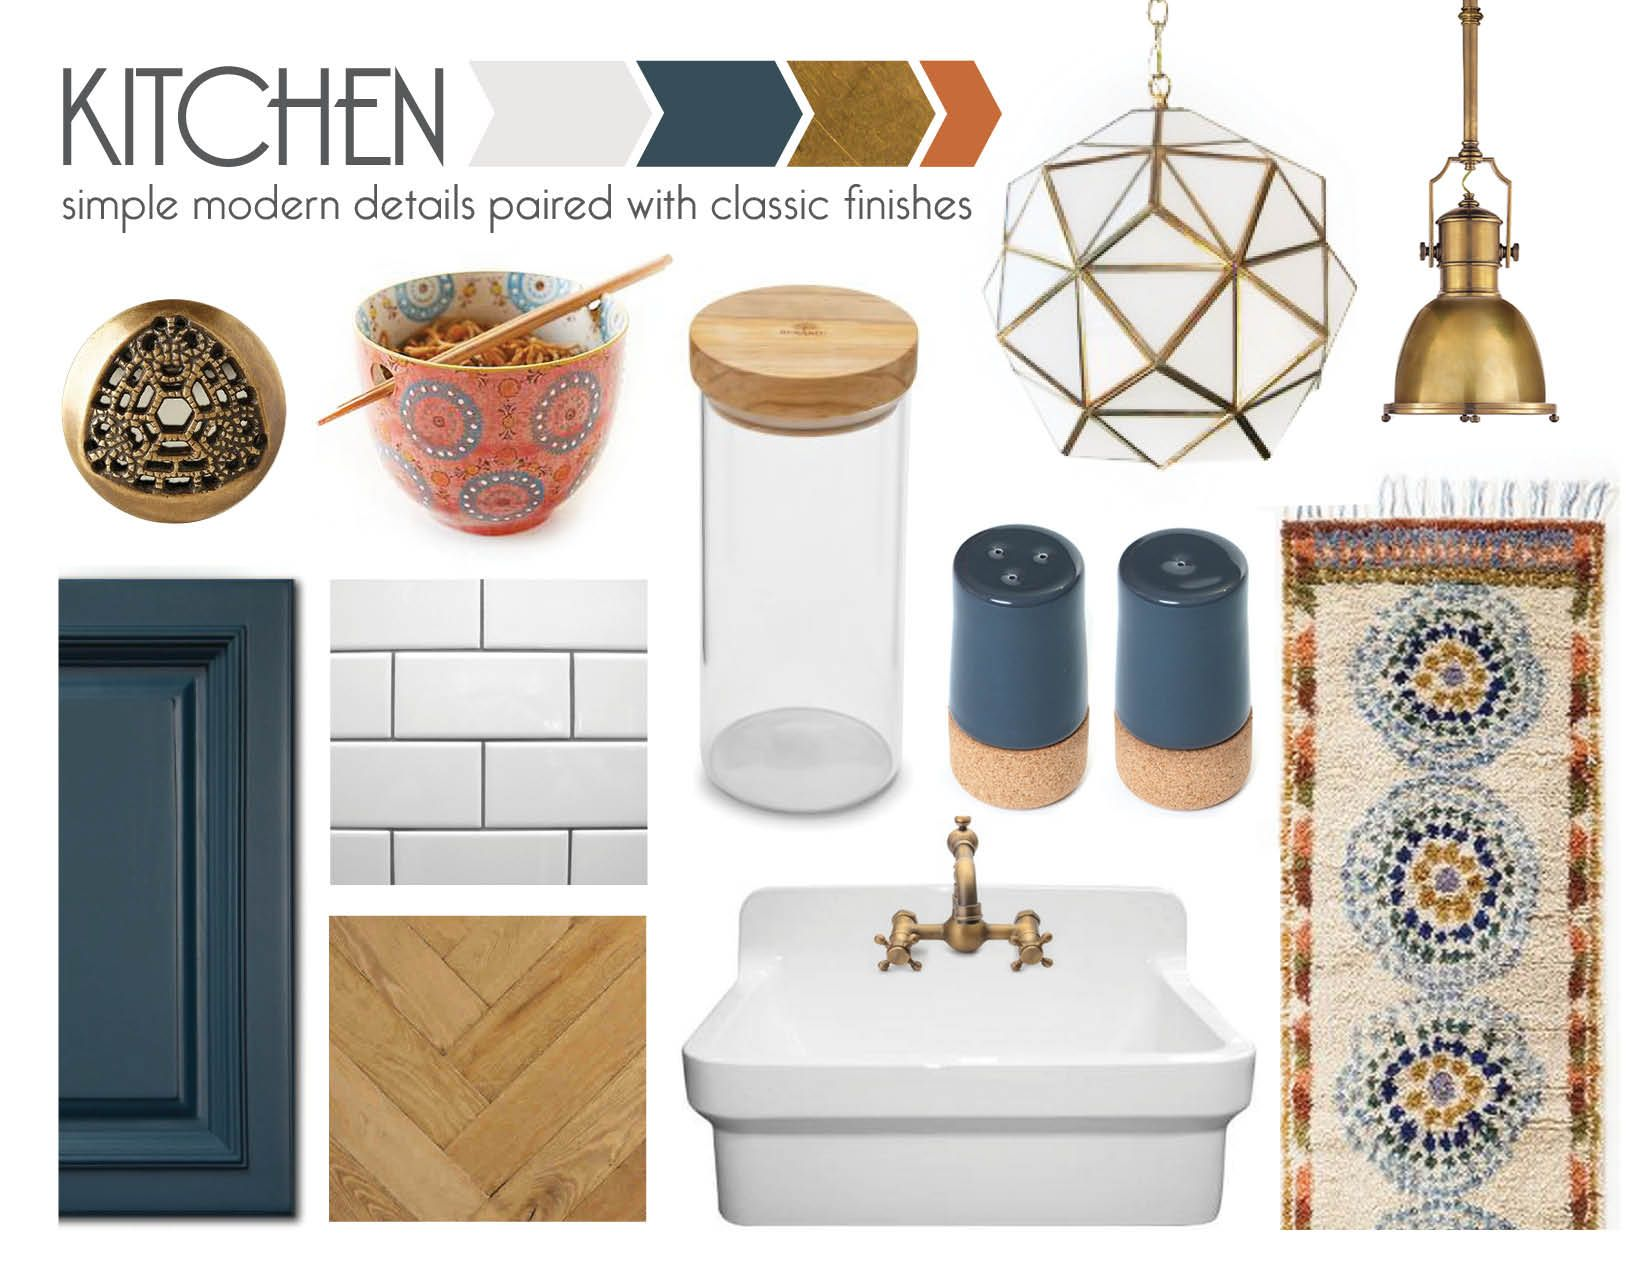 Kitchen Mood Board Simple Modern Details Paired With Classic Finishes BoardsInterior WallsHome Design